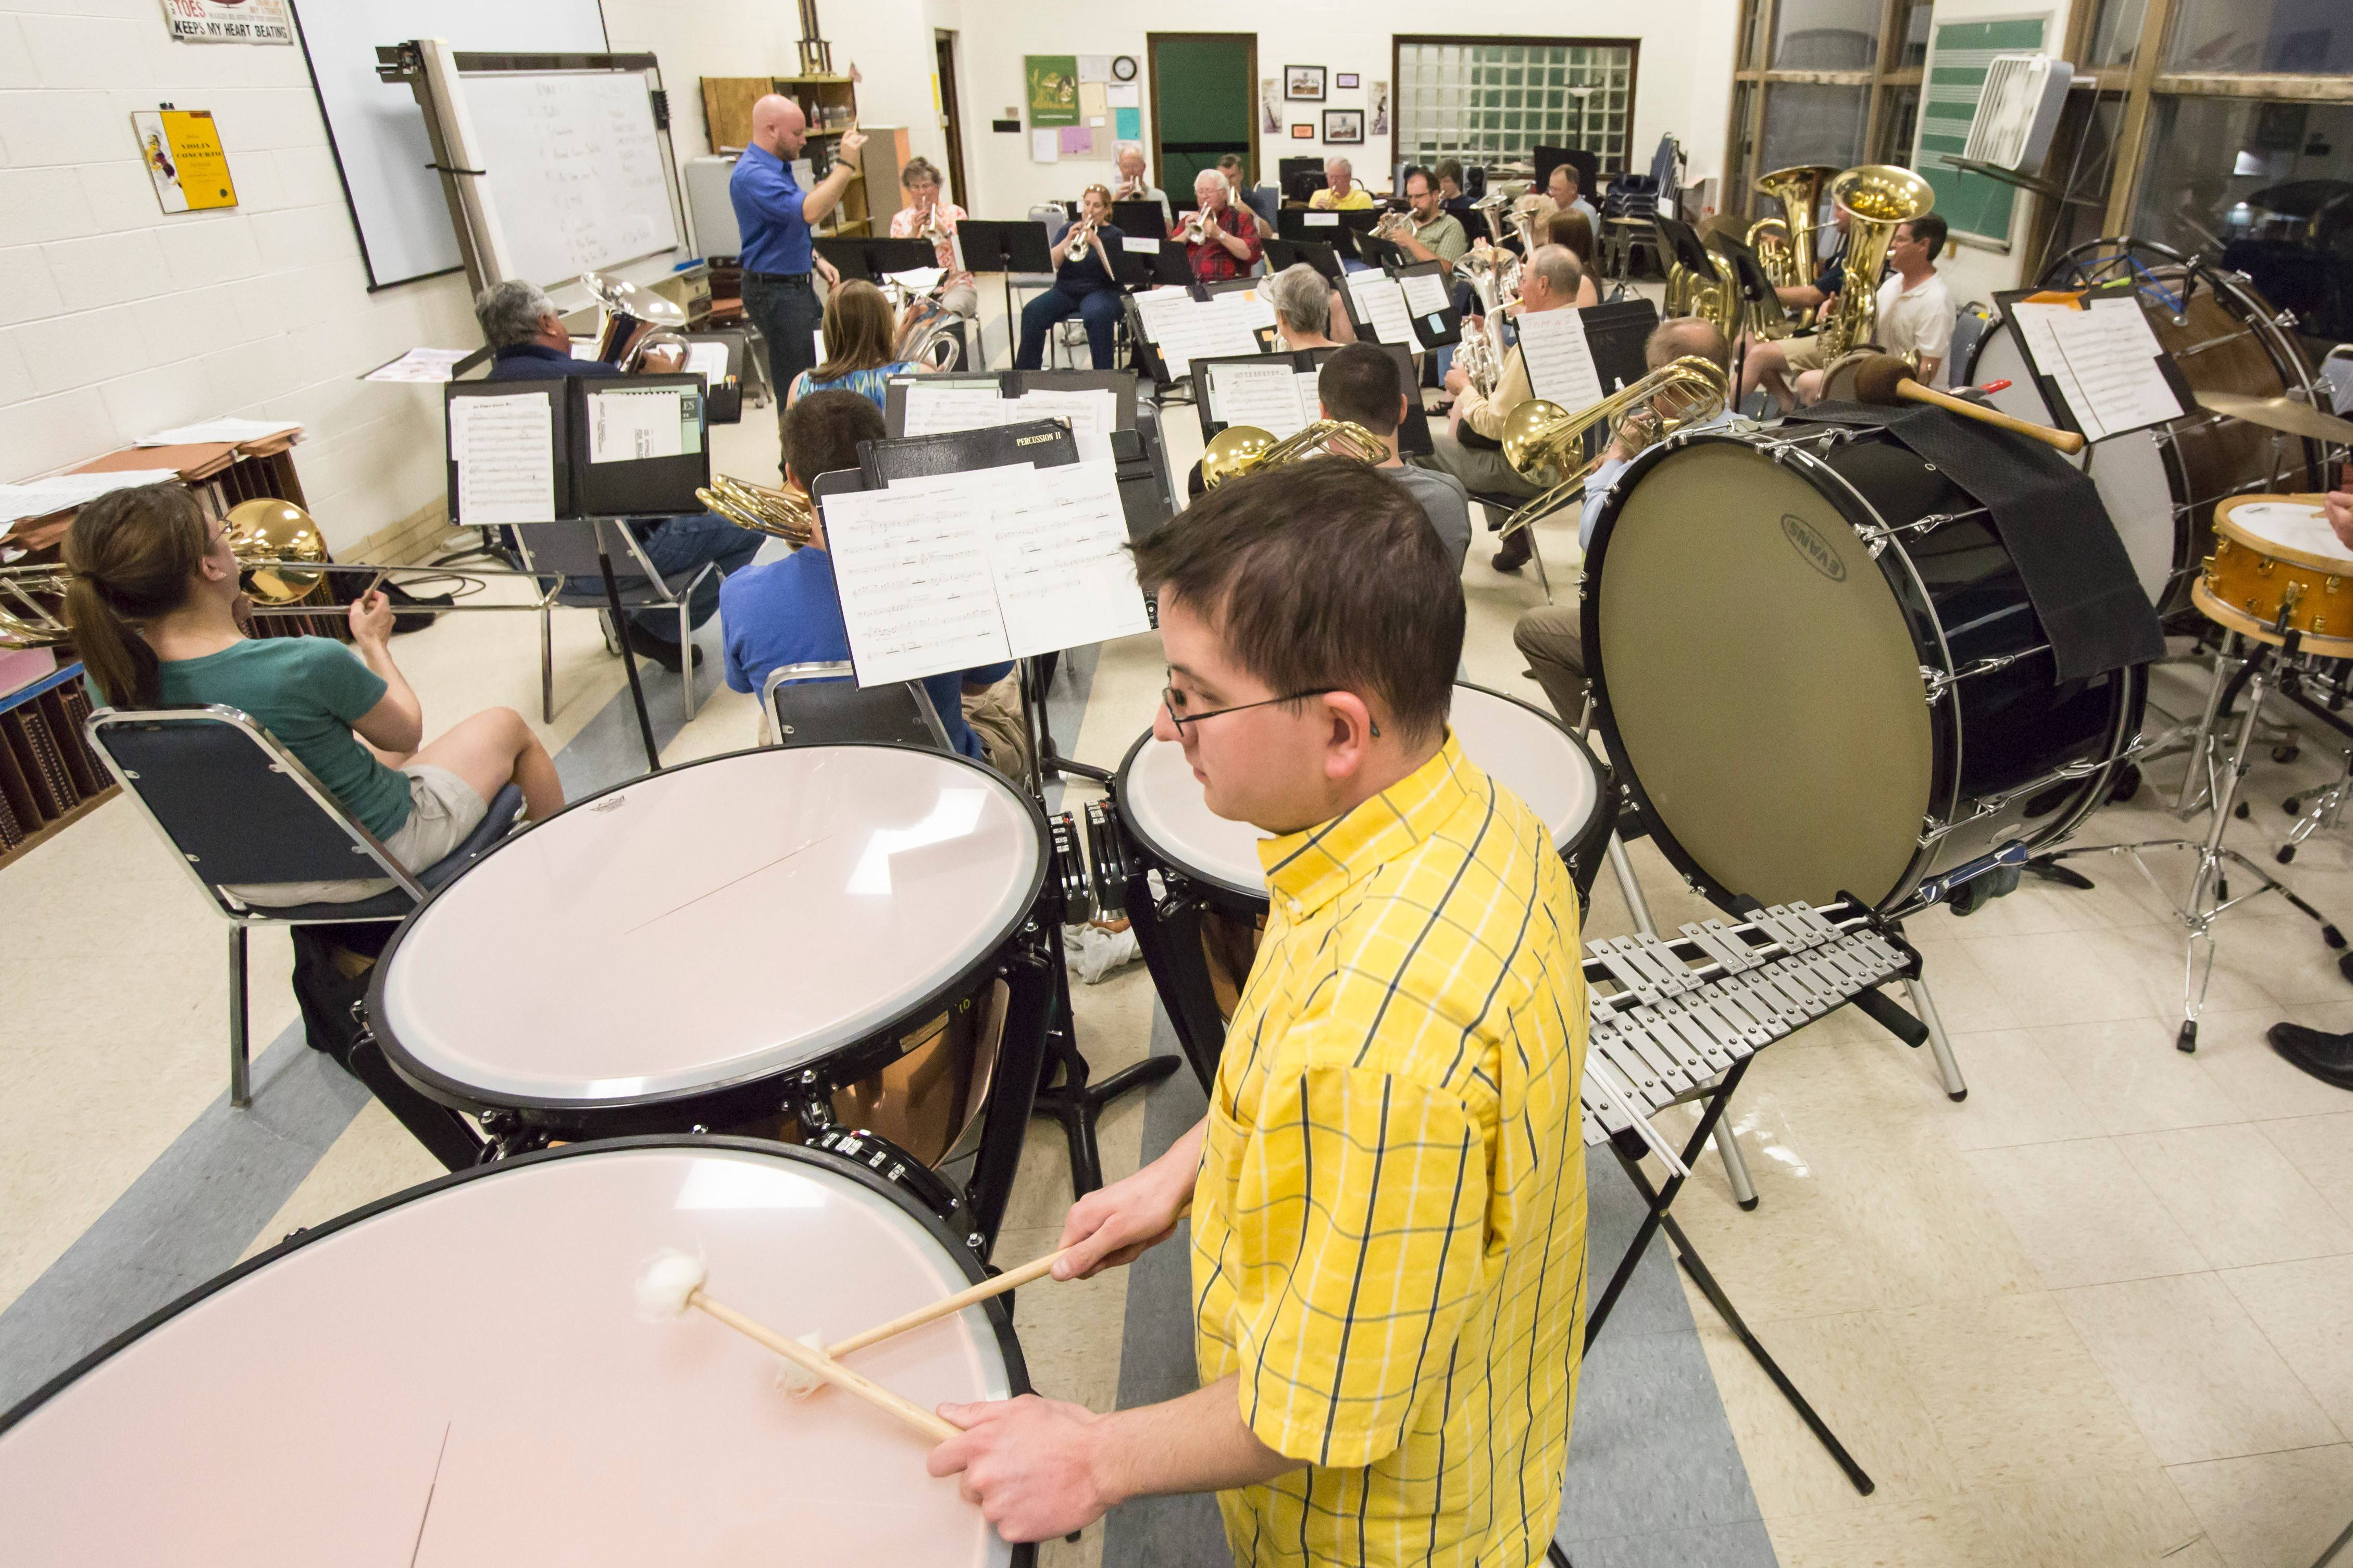 The Prairie Brass Band rehearses at Christian Liberty Academy with Peter Held conducting.